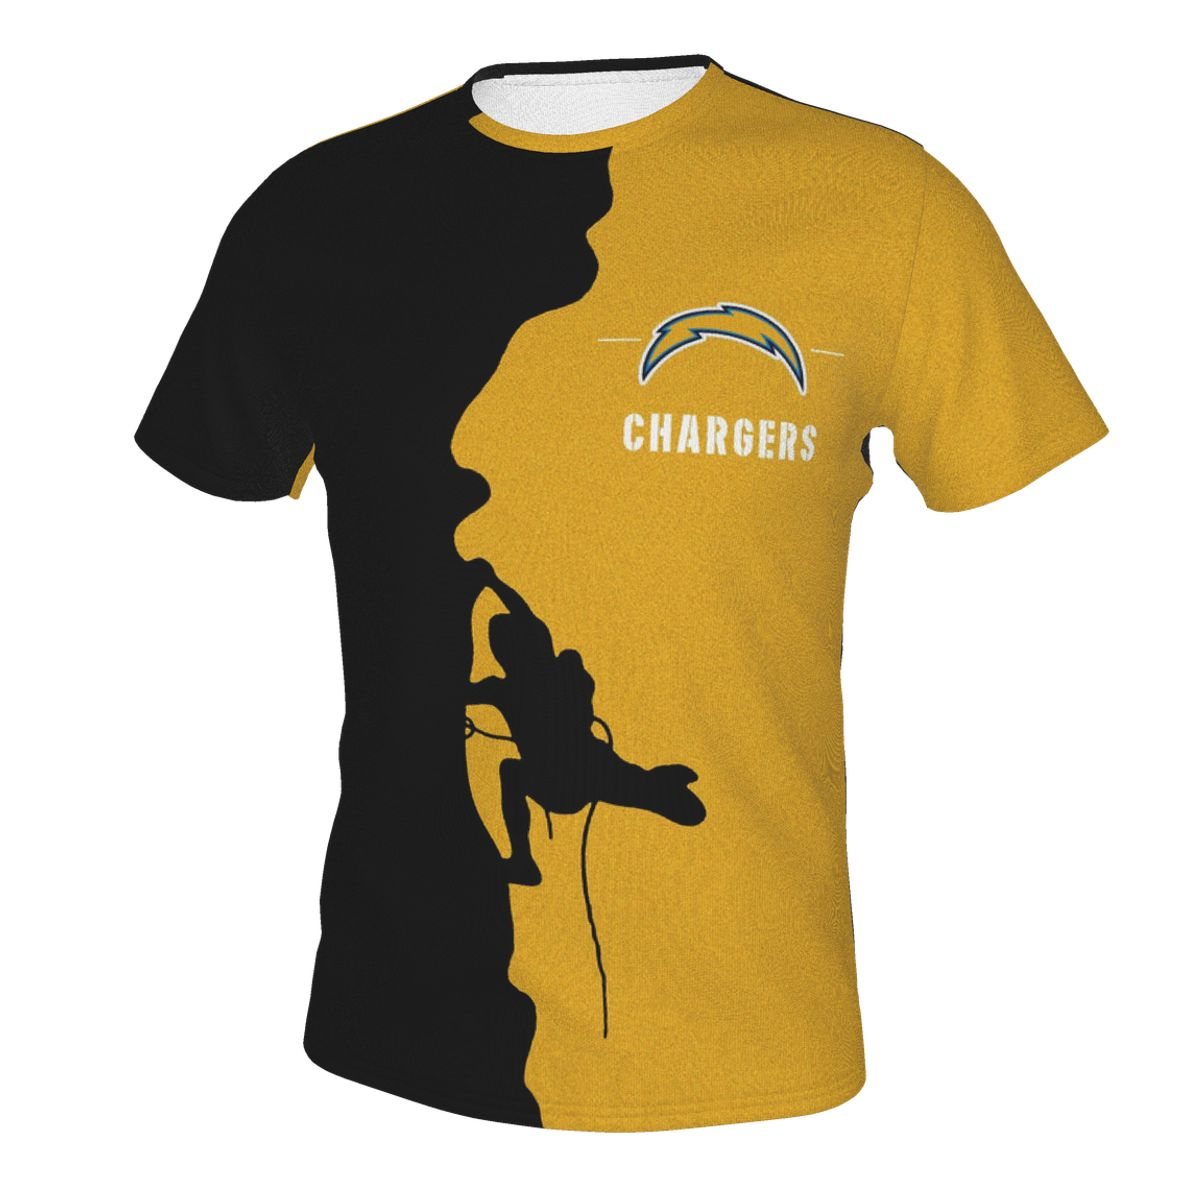 Climber Chargers T-shirts For Men